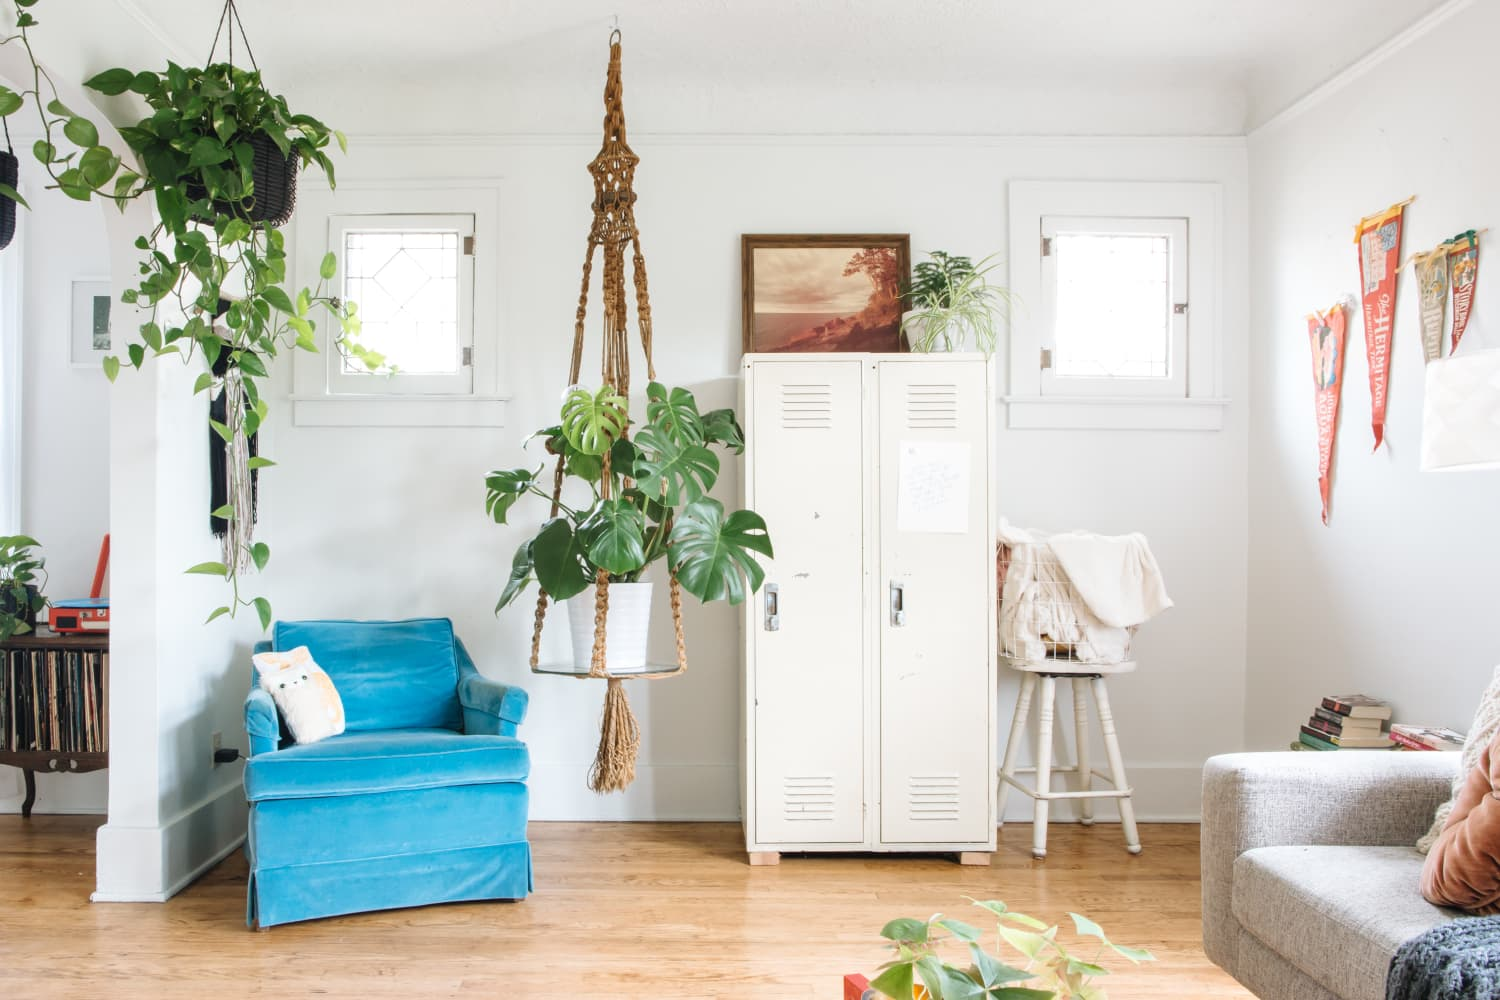 We're So Not Over This Big Plant Trend from 2018